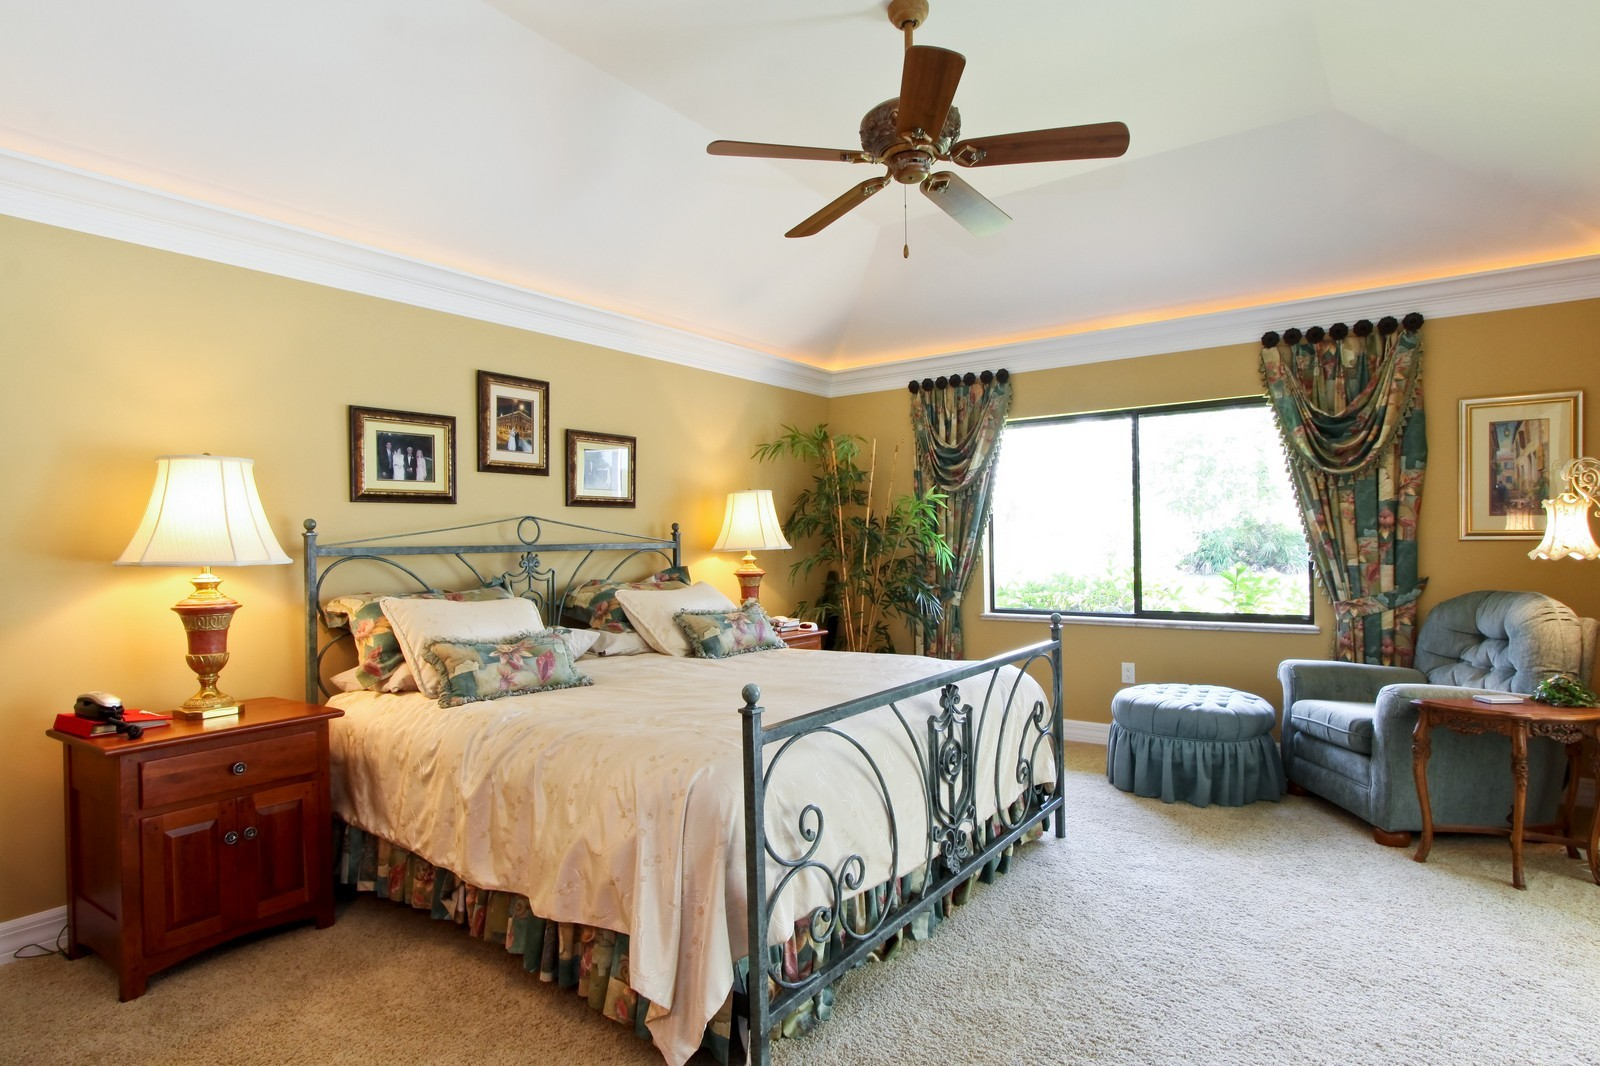 Real Estate Photography - 1986 Imperial GC Blvd, Naples, FL, 34110 - Master Bedroom